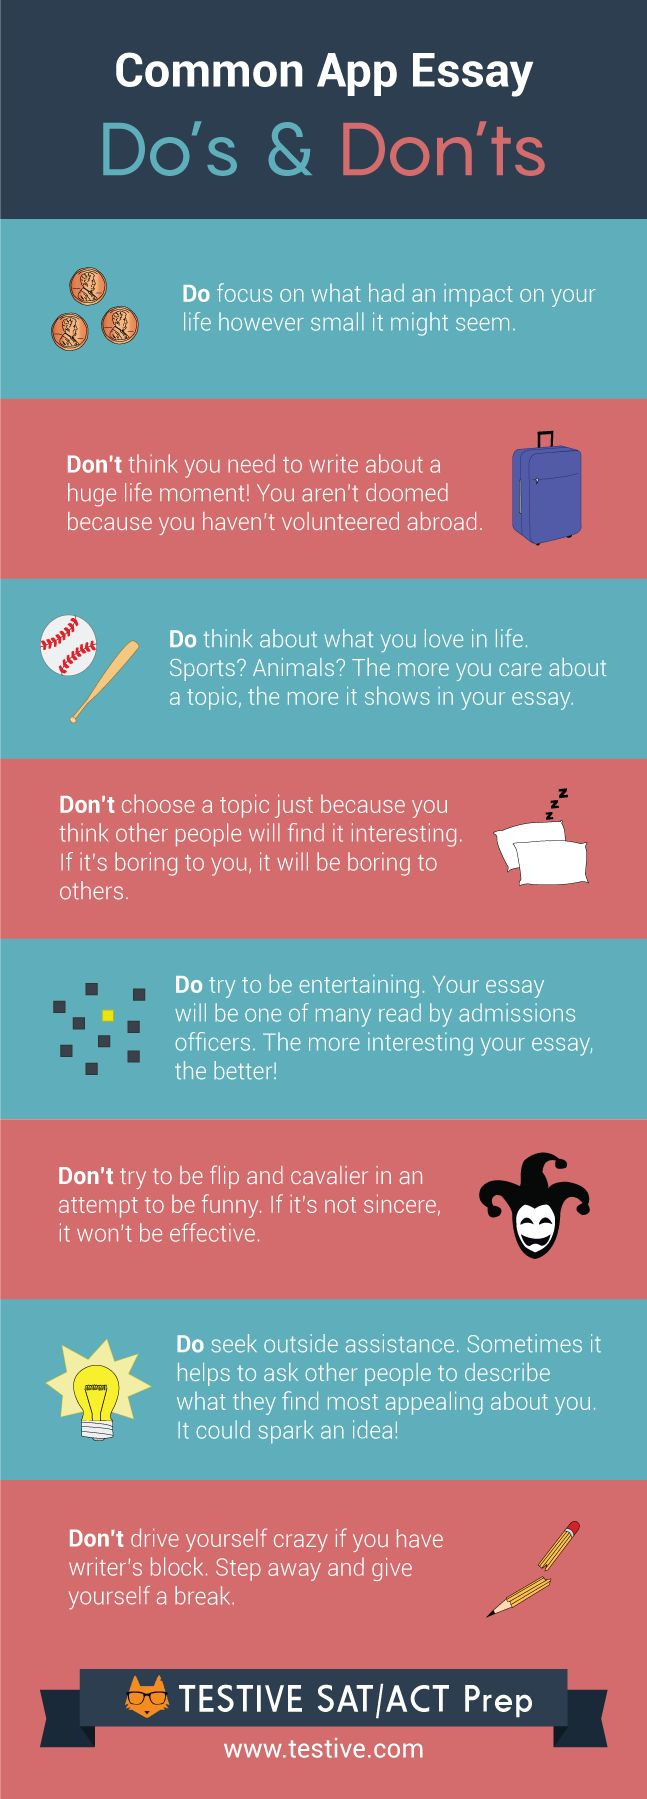 College essay tips? what topic do you think i should talk??